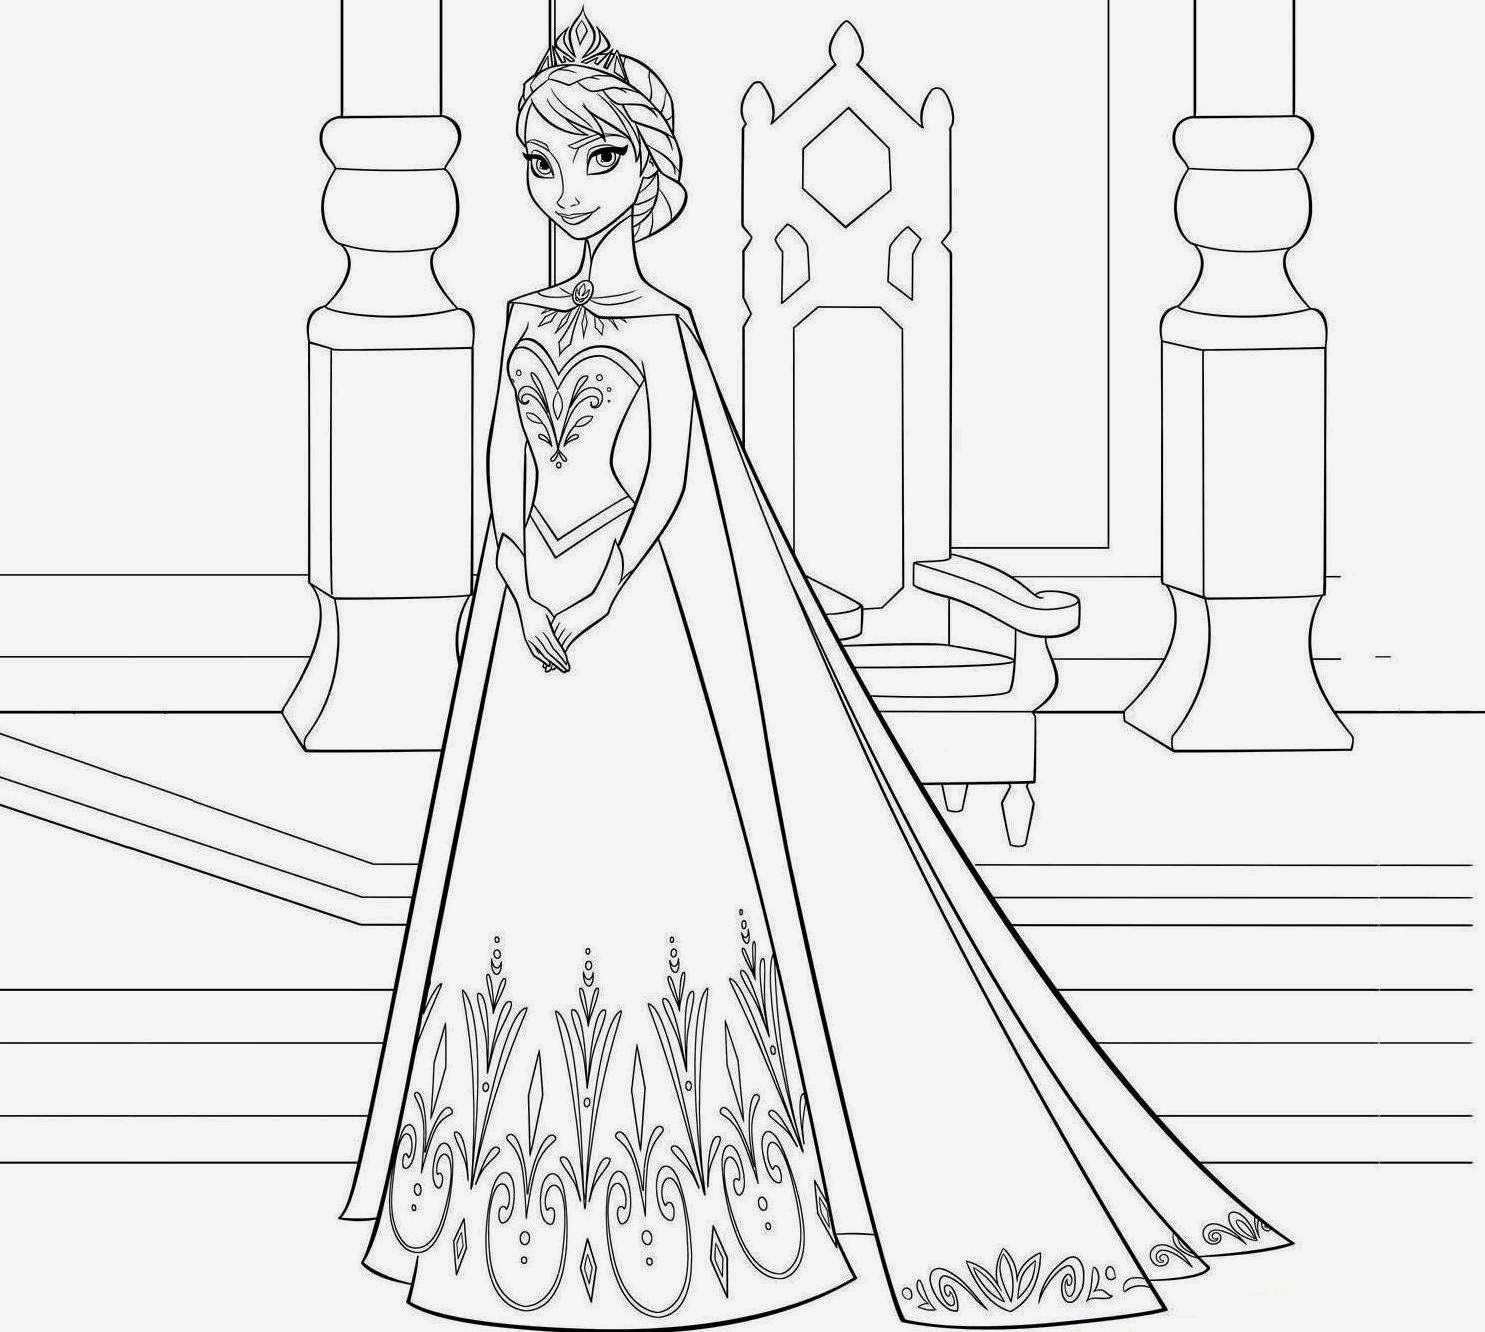 frozen drawings to color free frozen printable coloring activity pages plus free to drawings color frozen